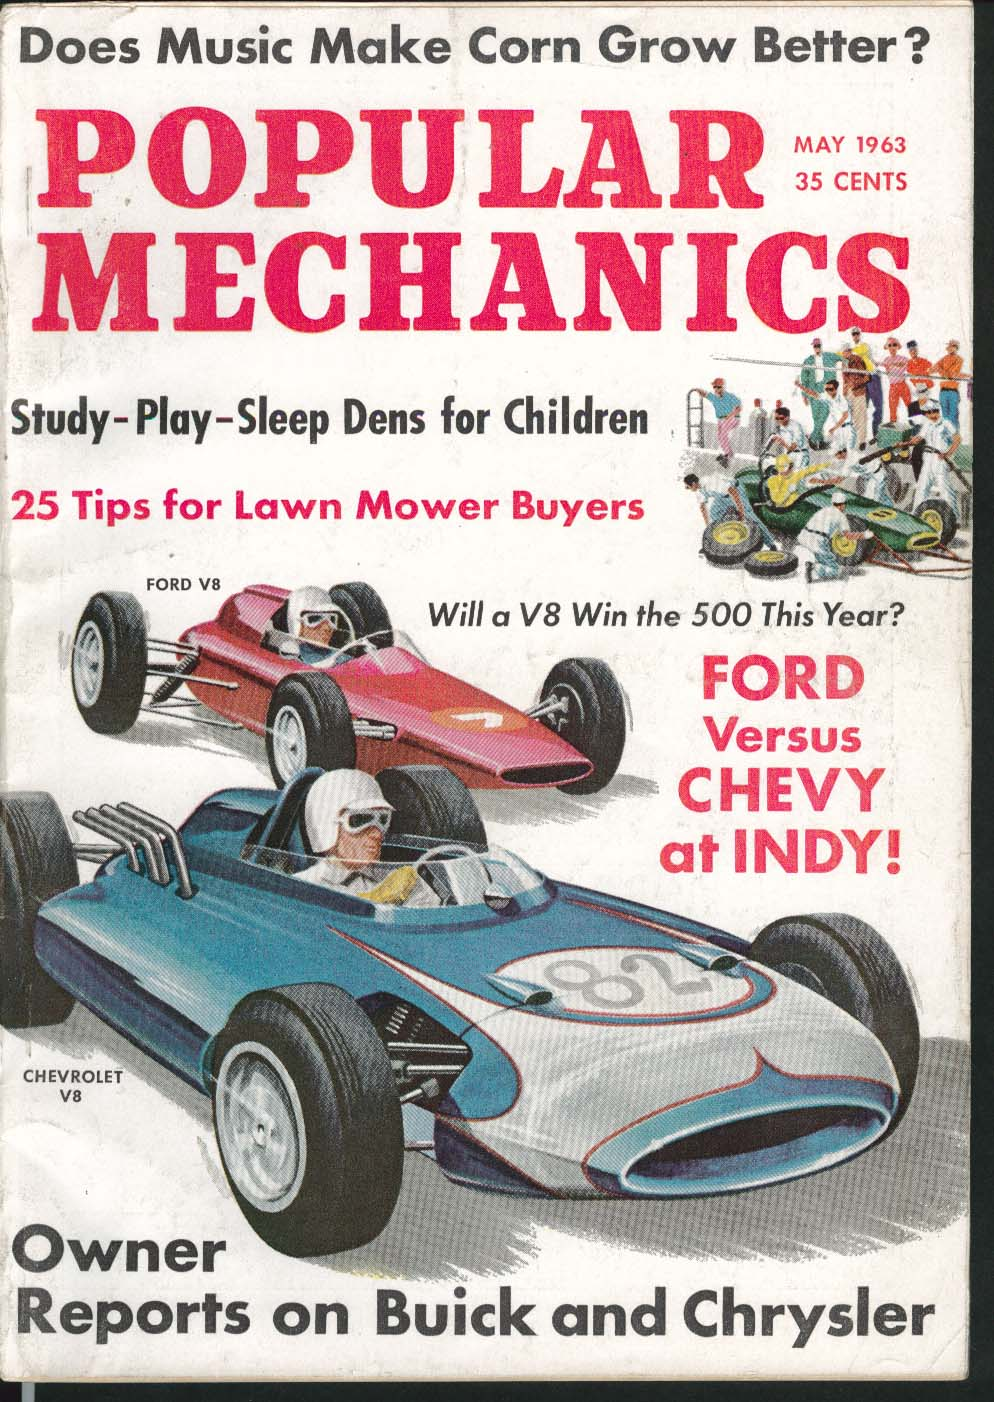 Image for POPULAR MECHANICS Music Makes Corn Grow Ford Chevy Indy Buick Chrysler ++ 5 1963